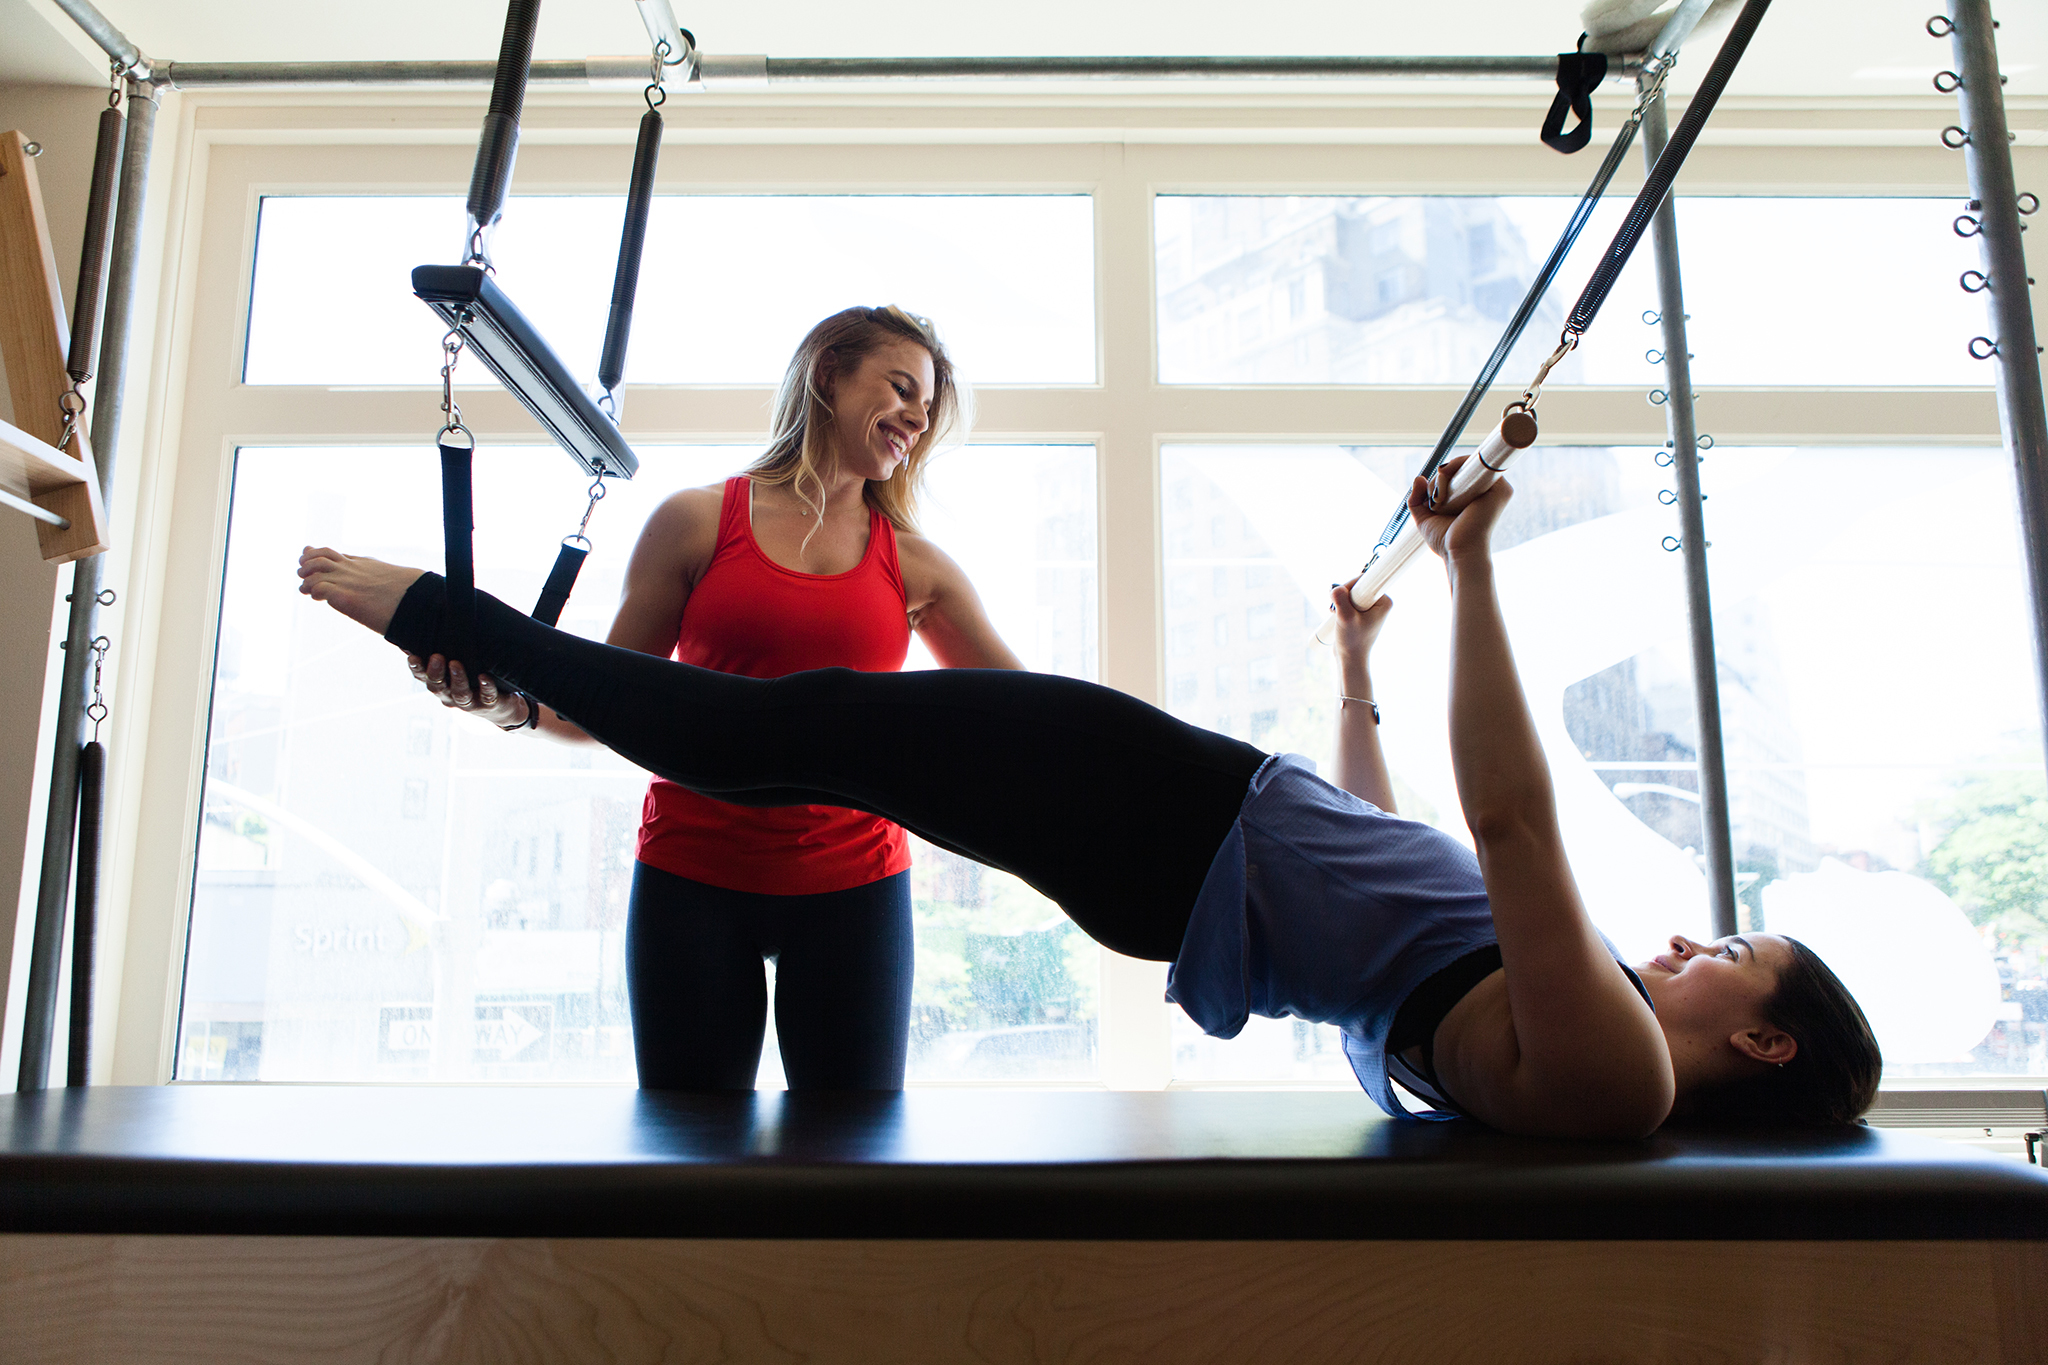 Best Pilates studios in NYC for strengthening your body and mind